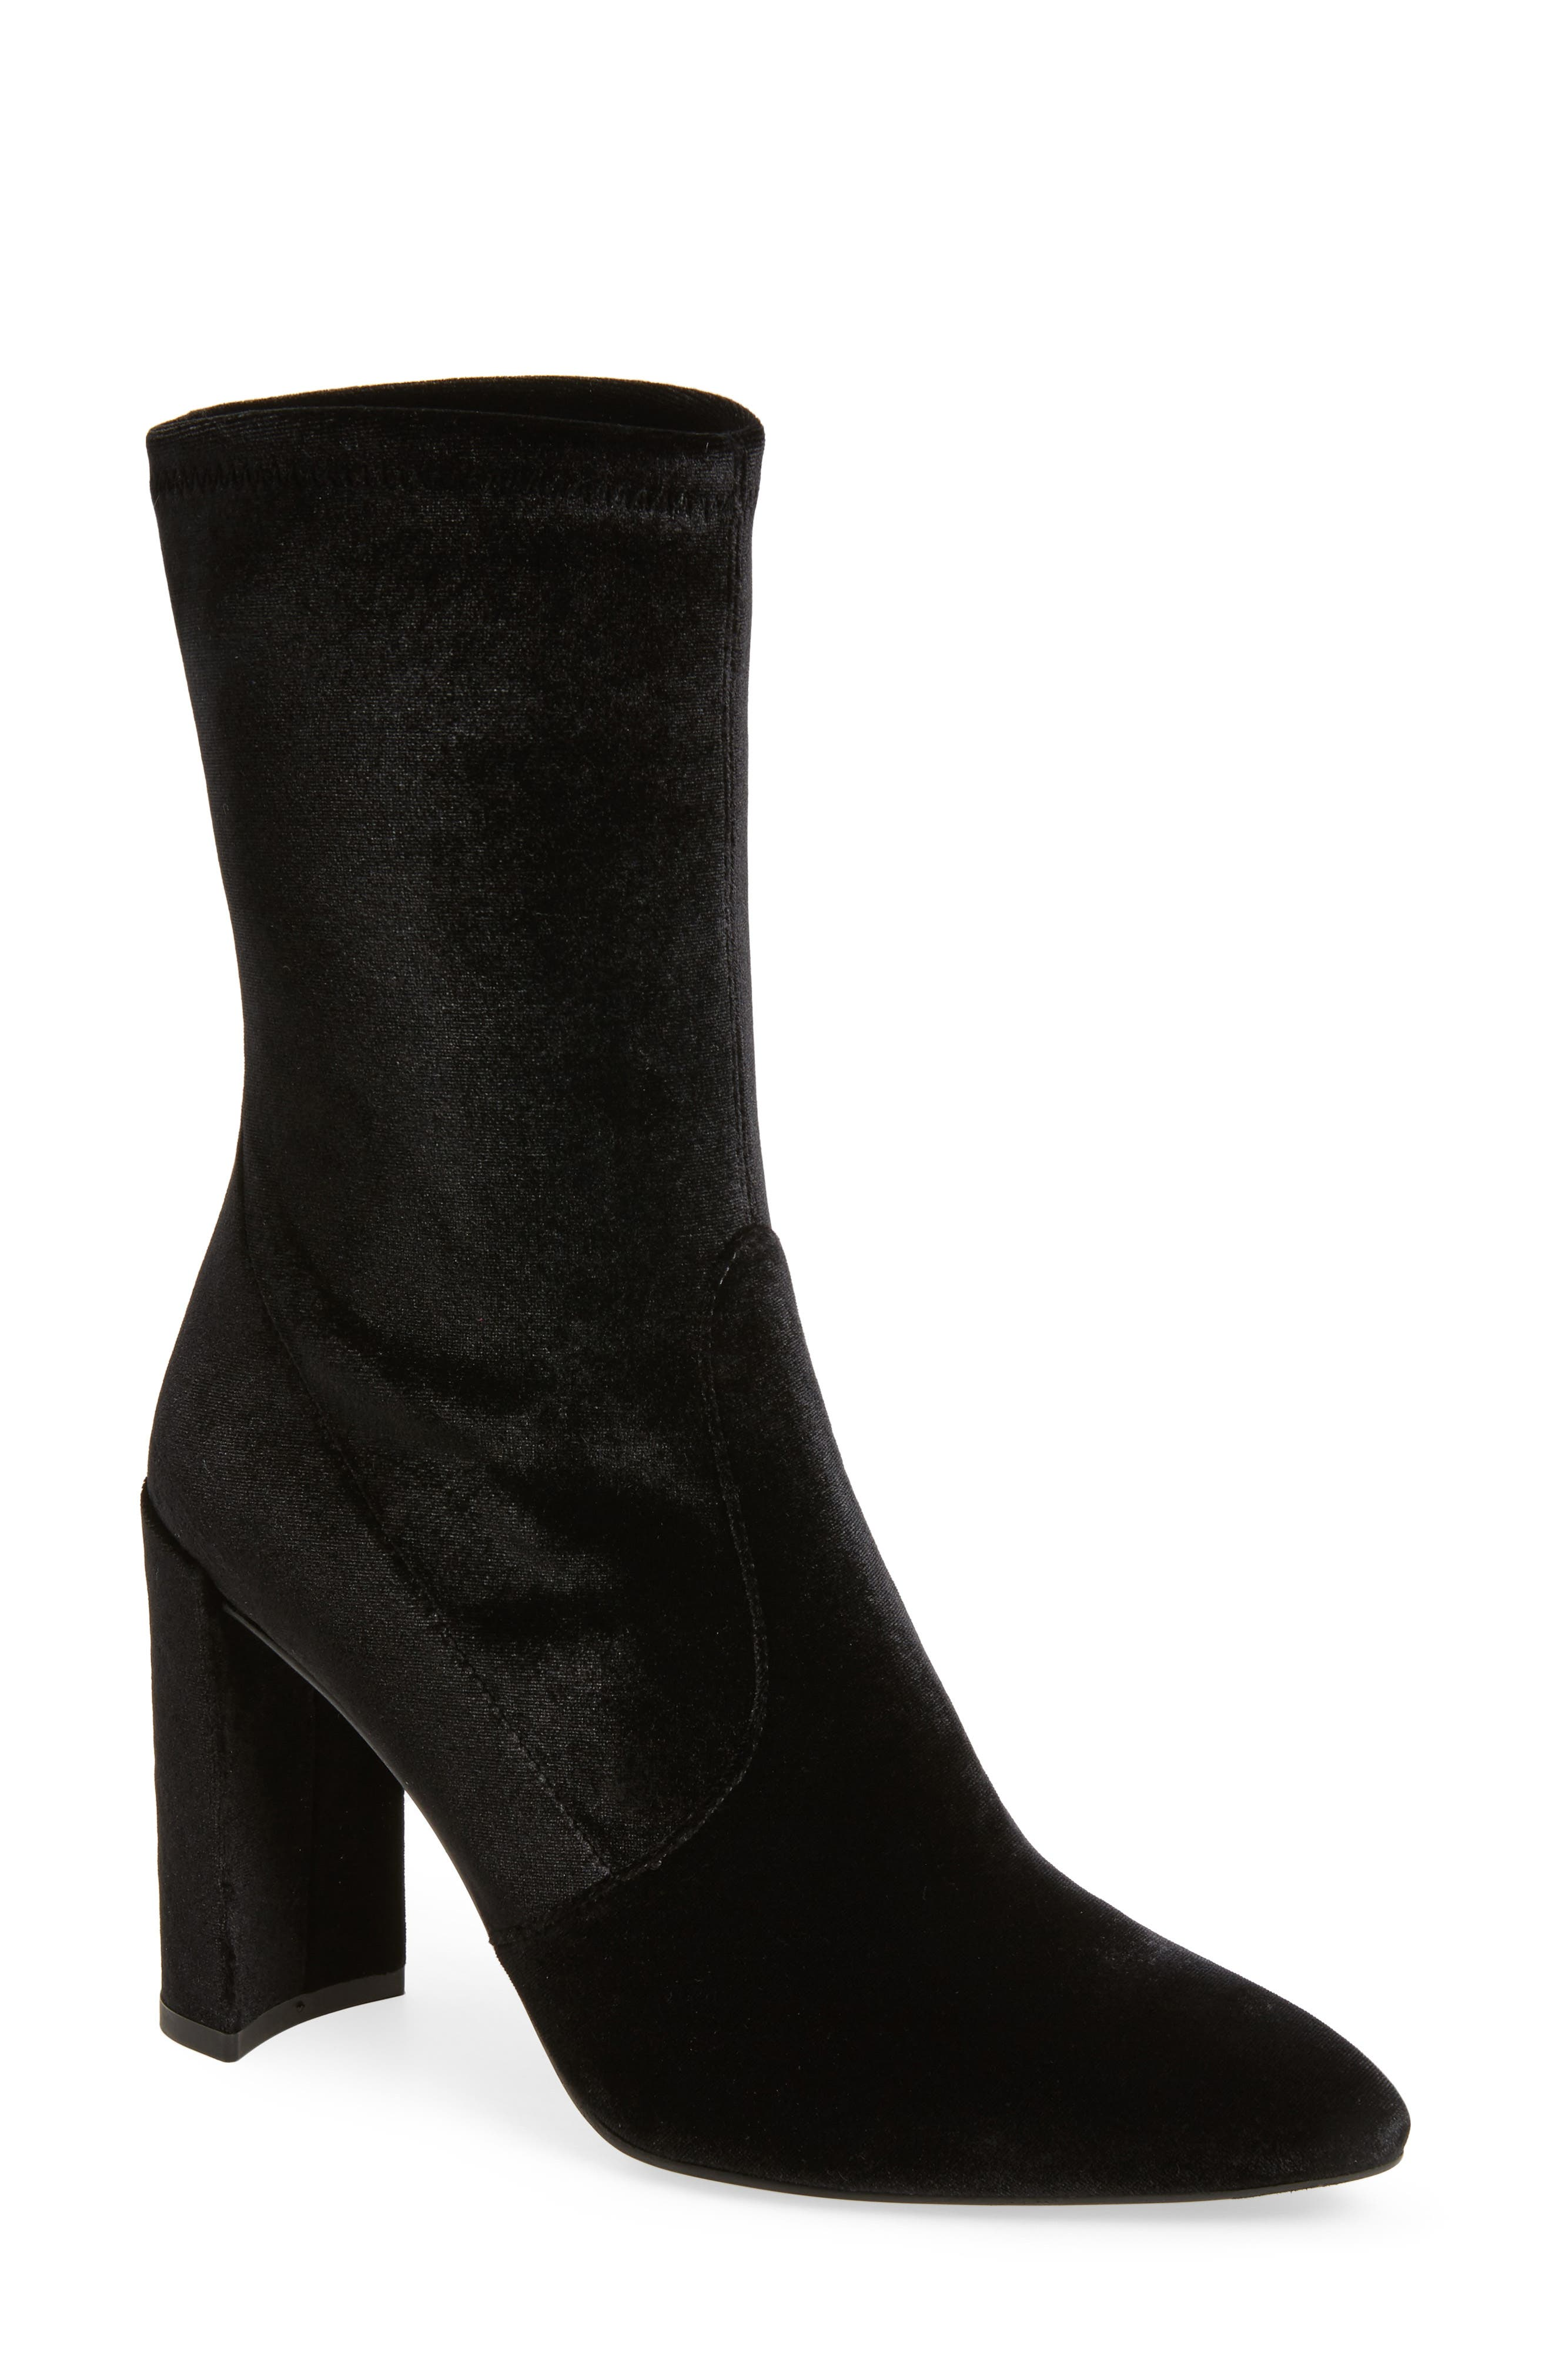 Alternate Image 1 Selected - Stuart Weitzman Clinger Stretch Bootie (Women)